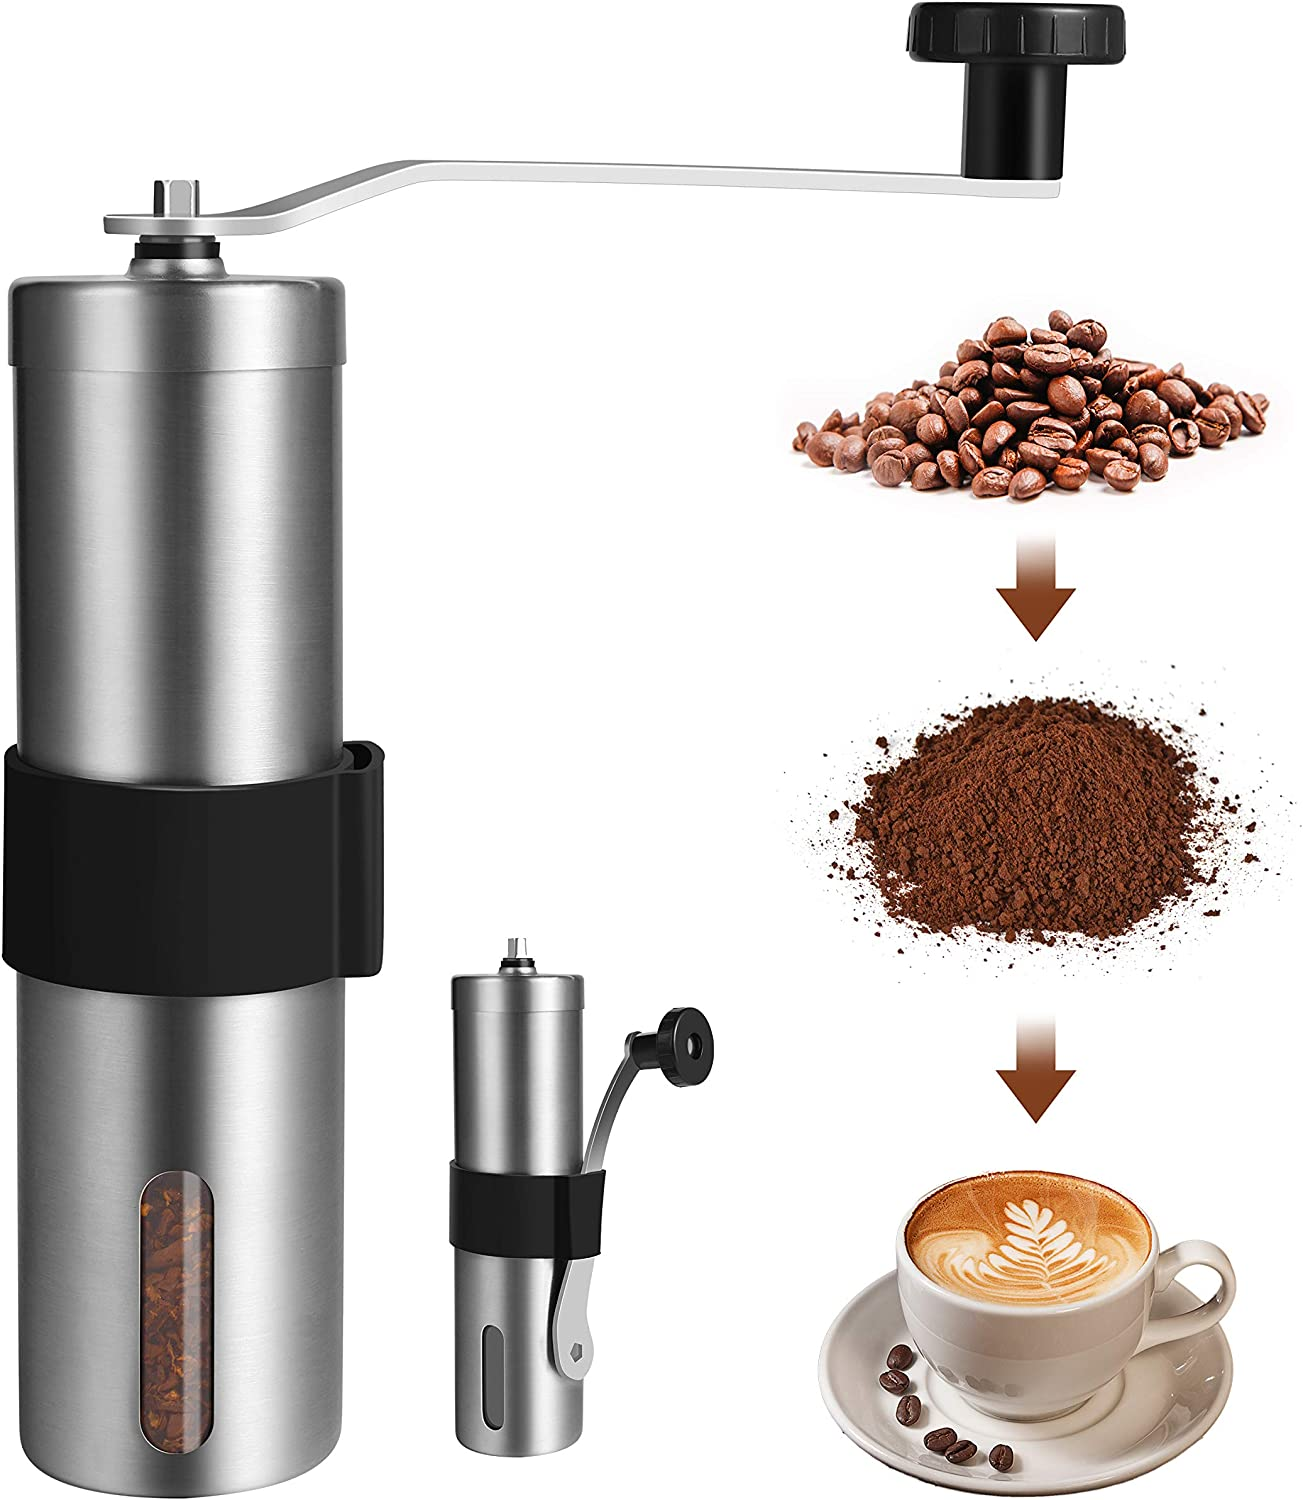 FONNOR Manual Coffee Grinder - Long Beach Mall Mill Steel Hand Max 50% OFF Stainless